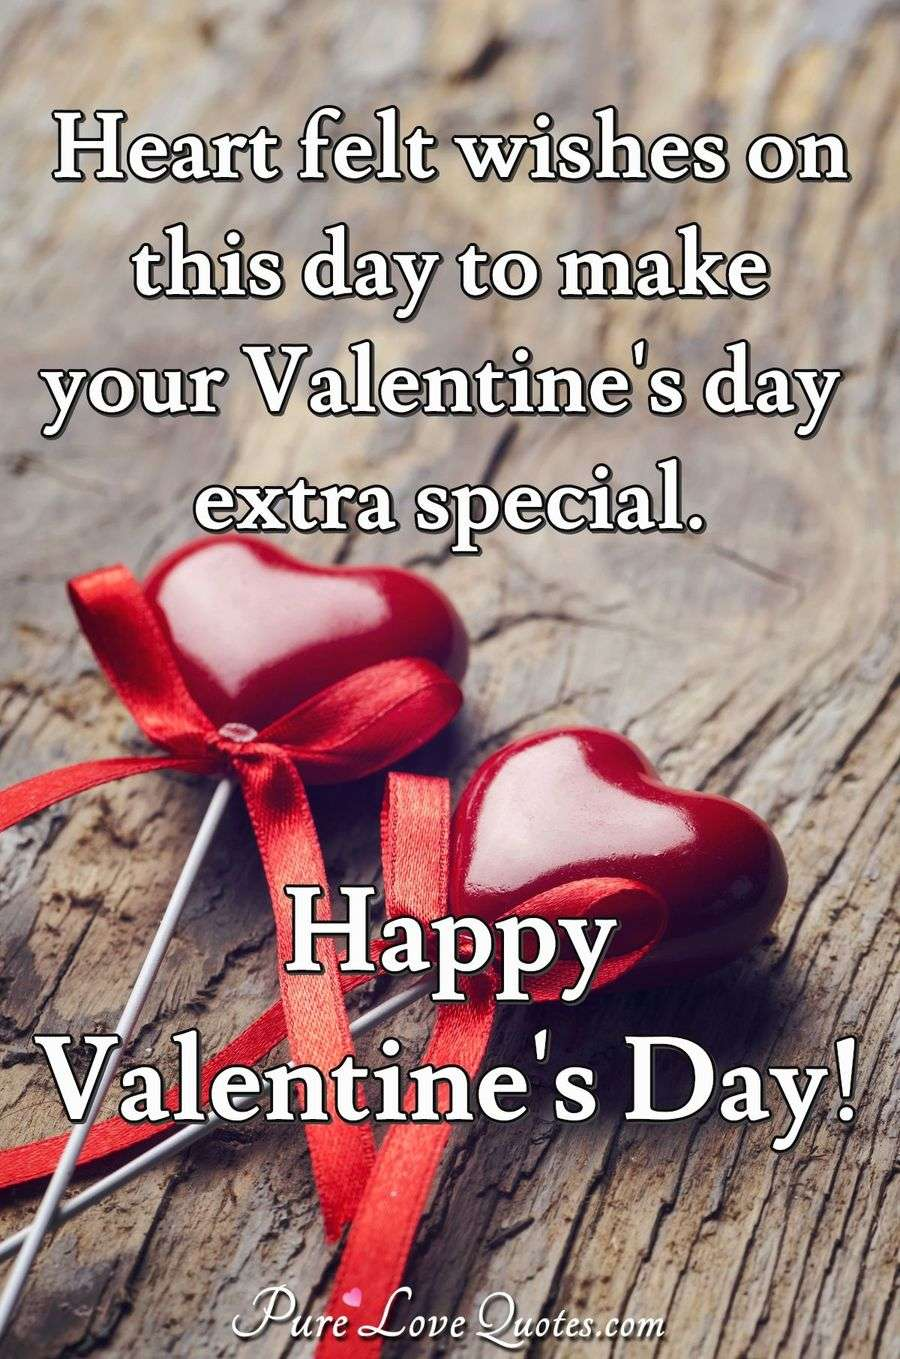 Heart felt wishes on this day to make your Valentines day extra